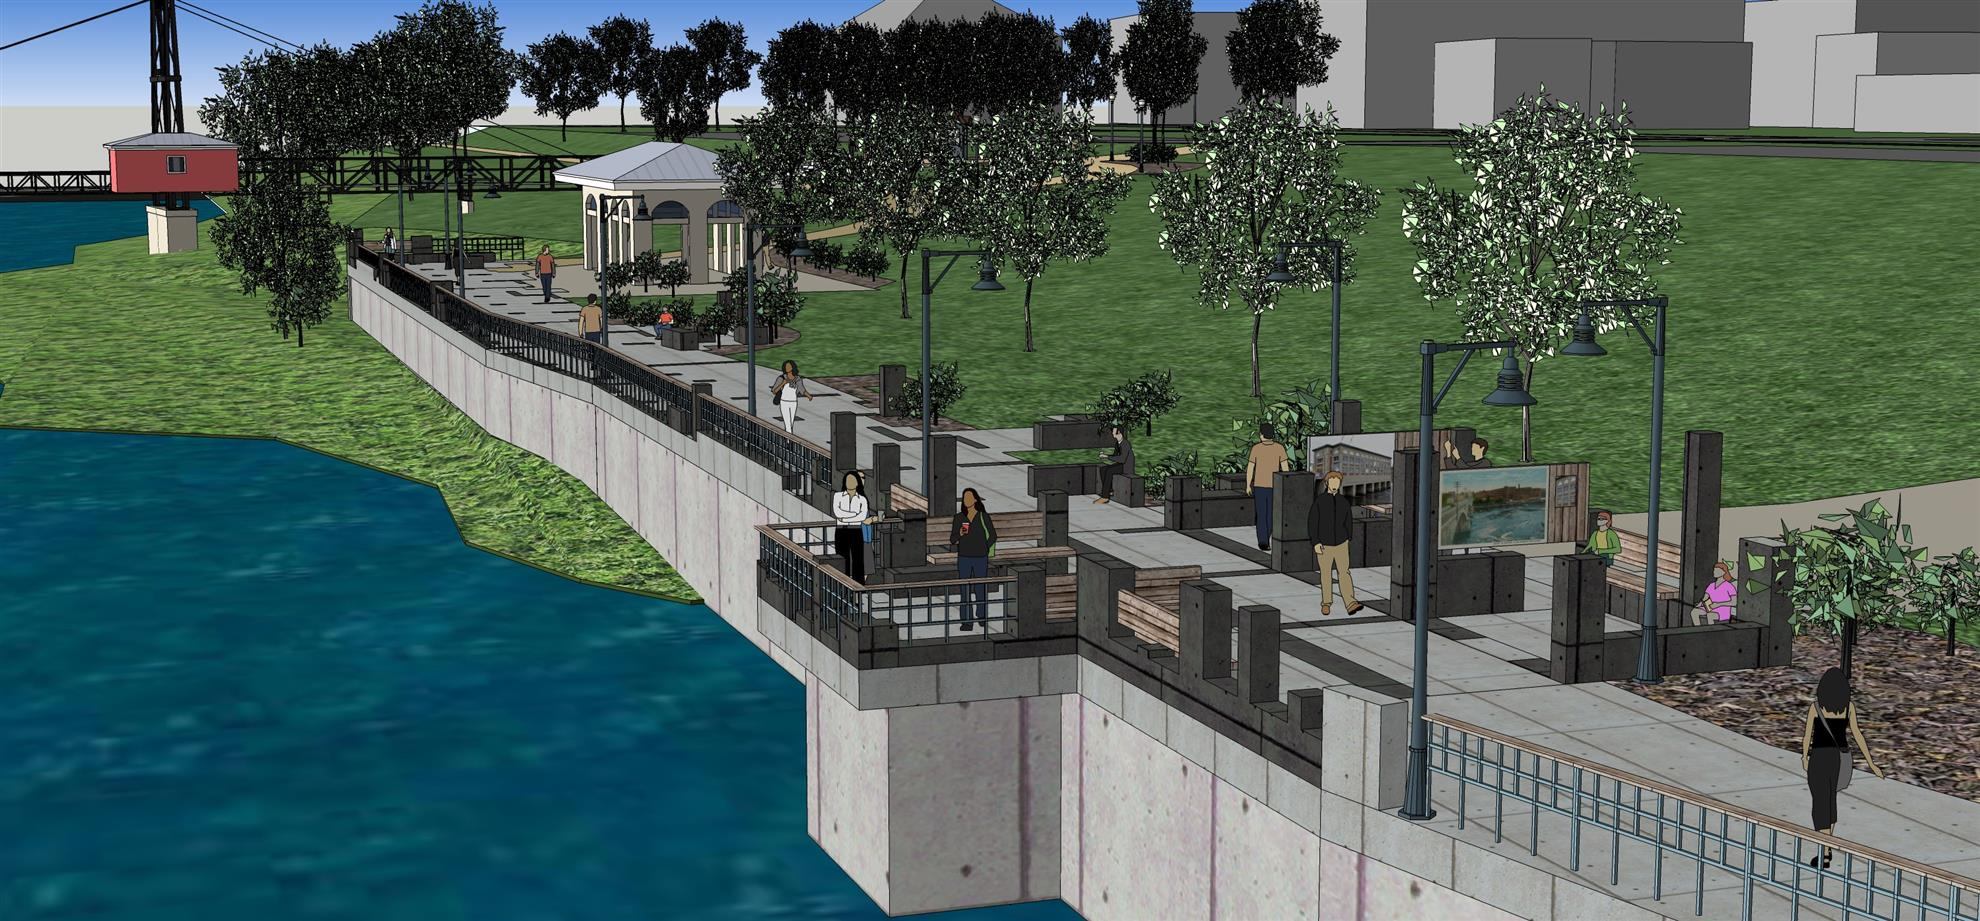 Artist Rendering of Waterville Rotary Kennebec Riverwalk Project